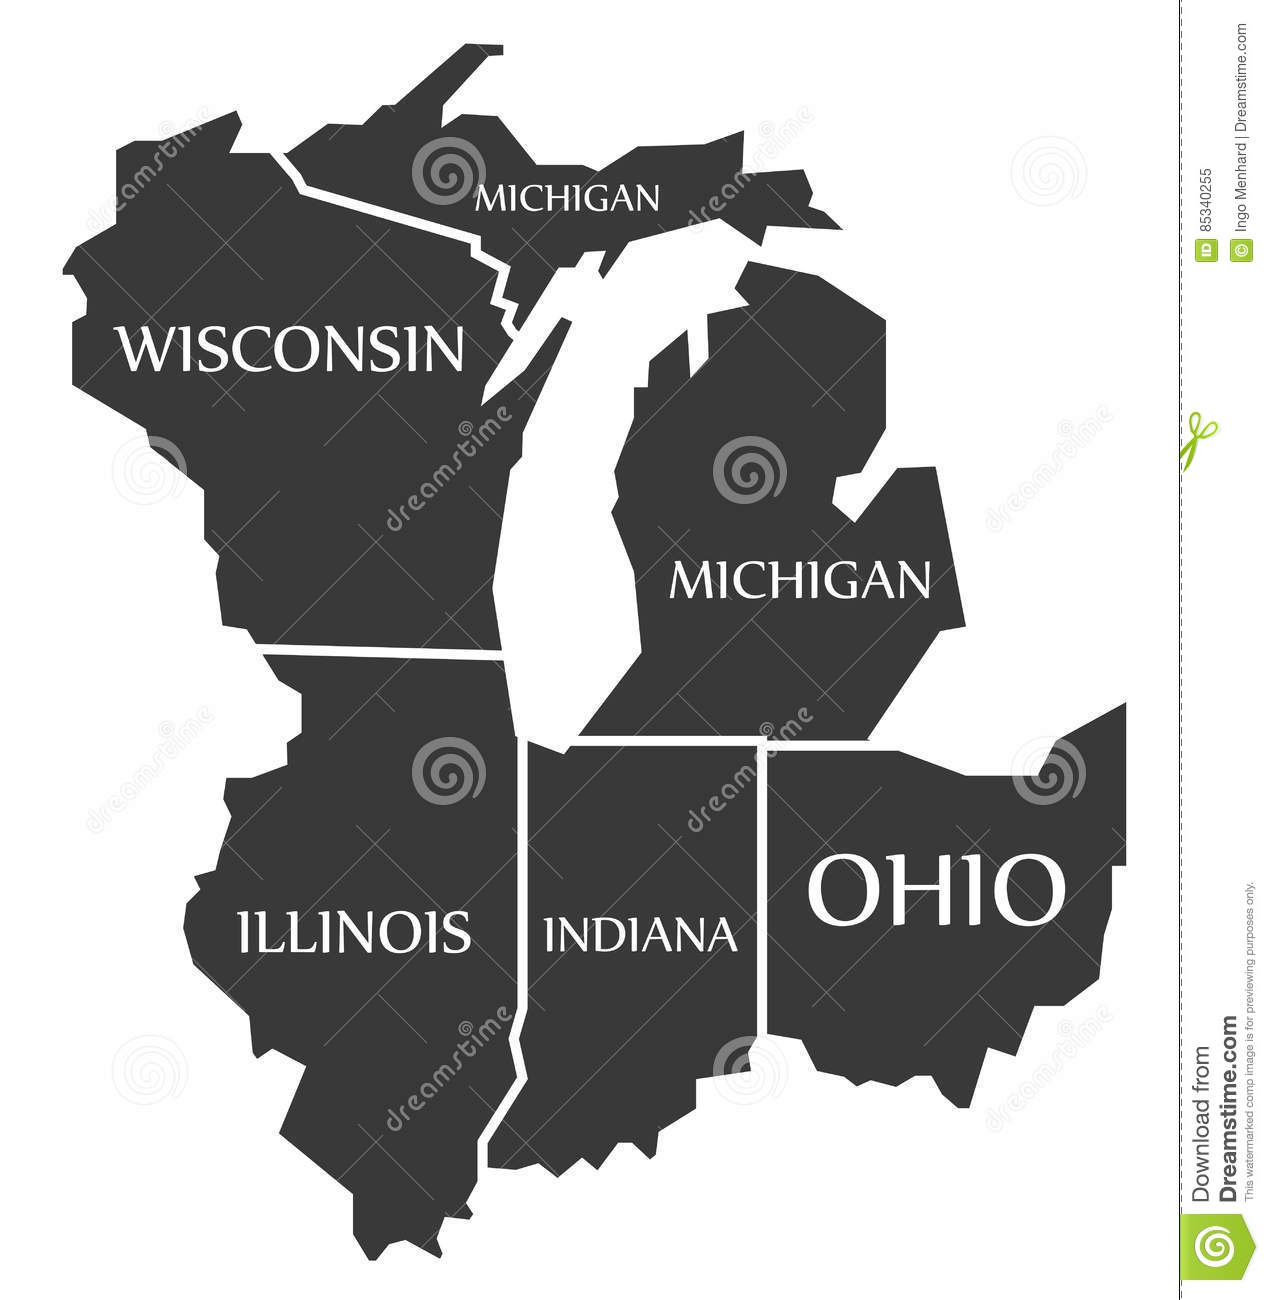 Michigan And Wisconsin Map.Michigan Wisconsin Illinois Indiana Ohio Map Labelled Bl